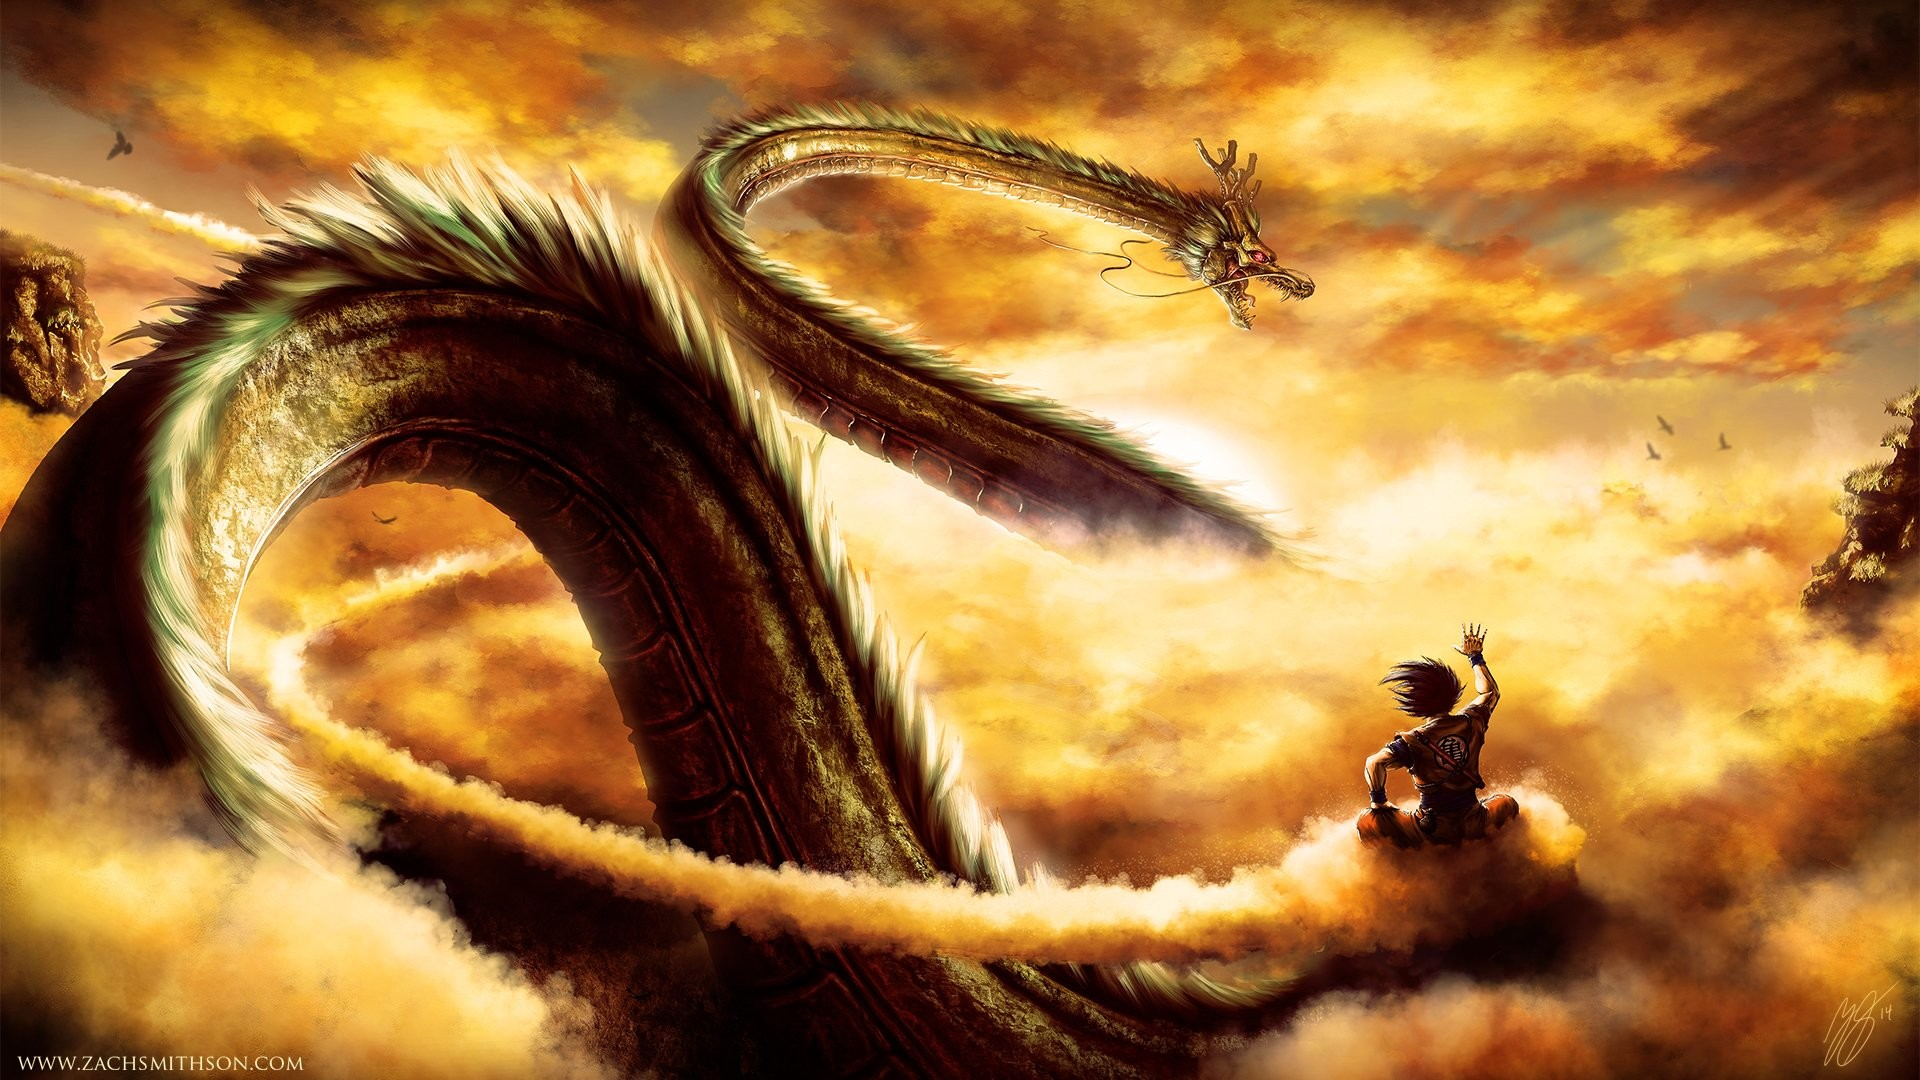 Epic Movie Hd Wallpapers 4k Cool Dragon Wallpapers 46 Images